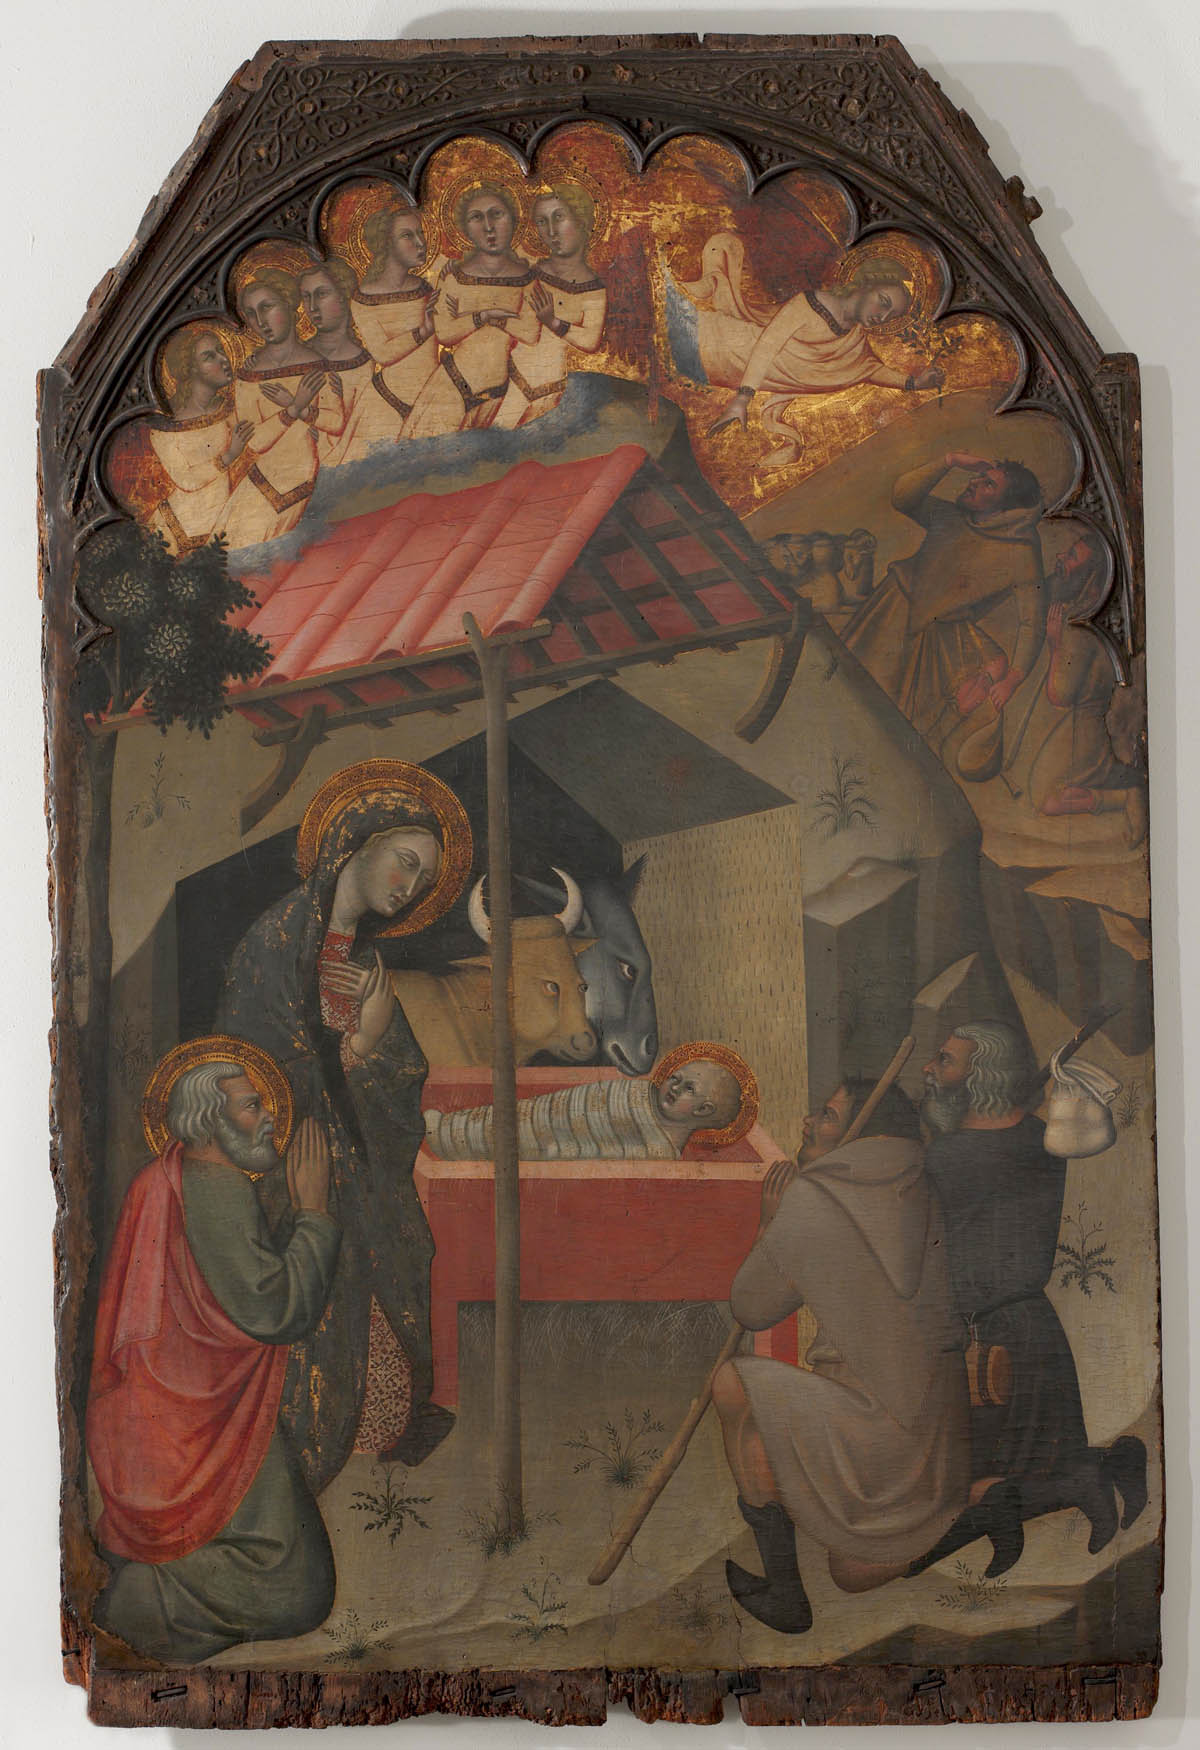 Adoration of the Shepherds (c.1374) Tempera on panel by Bartolo di Fredi Courtesy The Metropolitan Museum of Art, Cloisters Collection